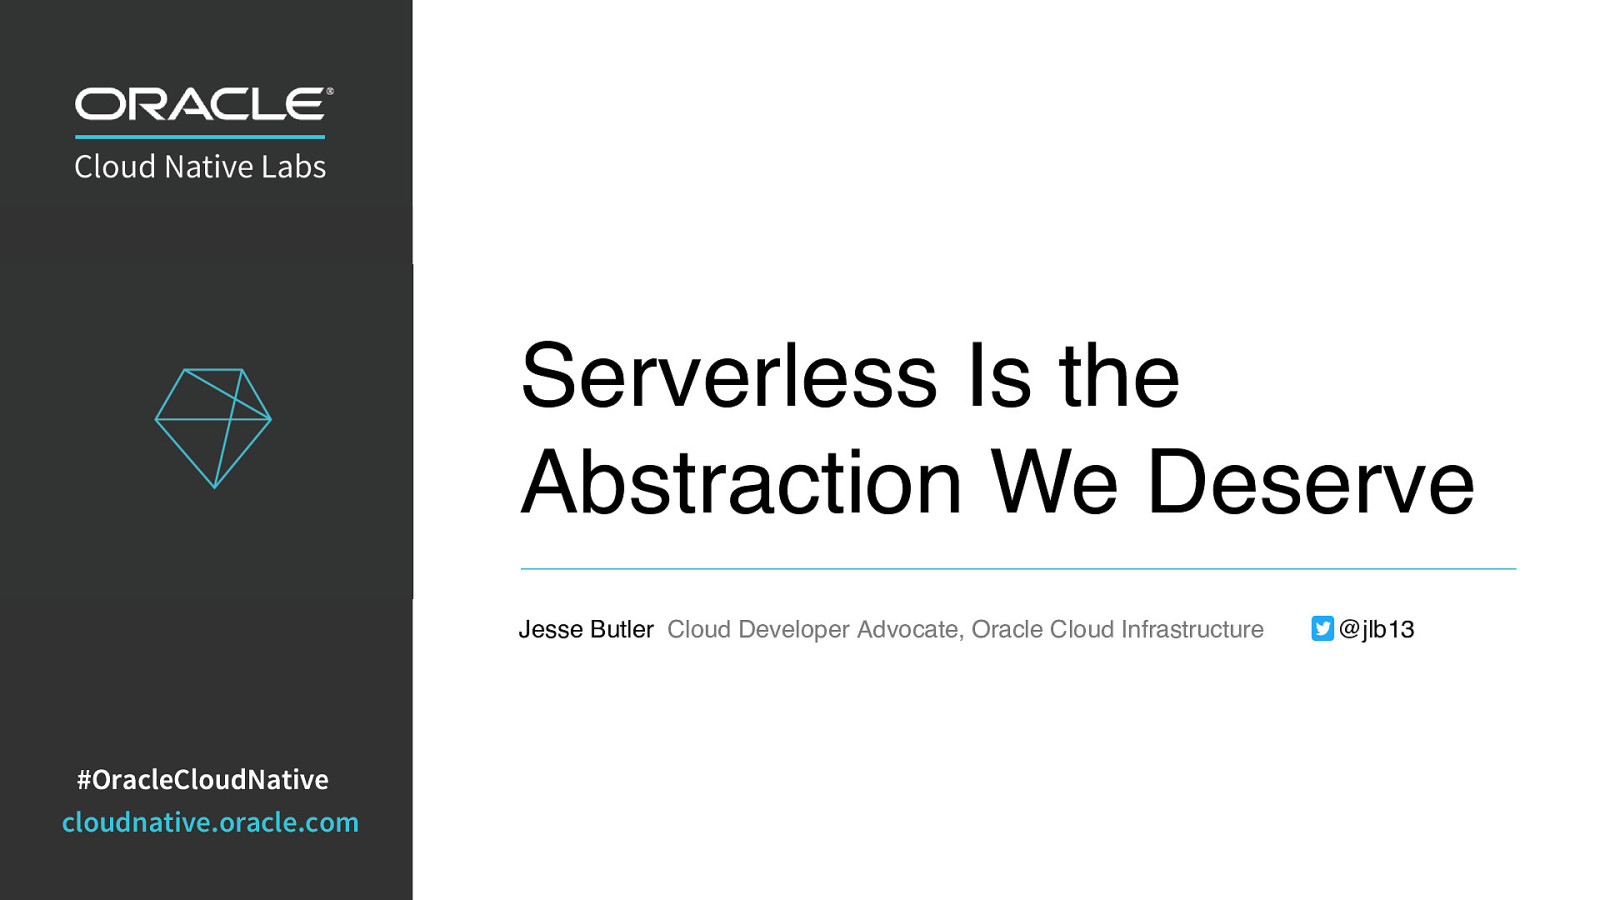 Serverless is the Abstraction We Deserve